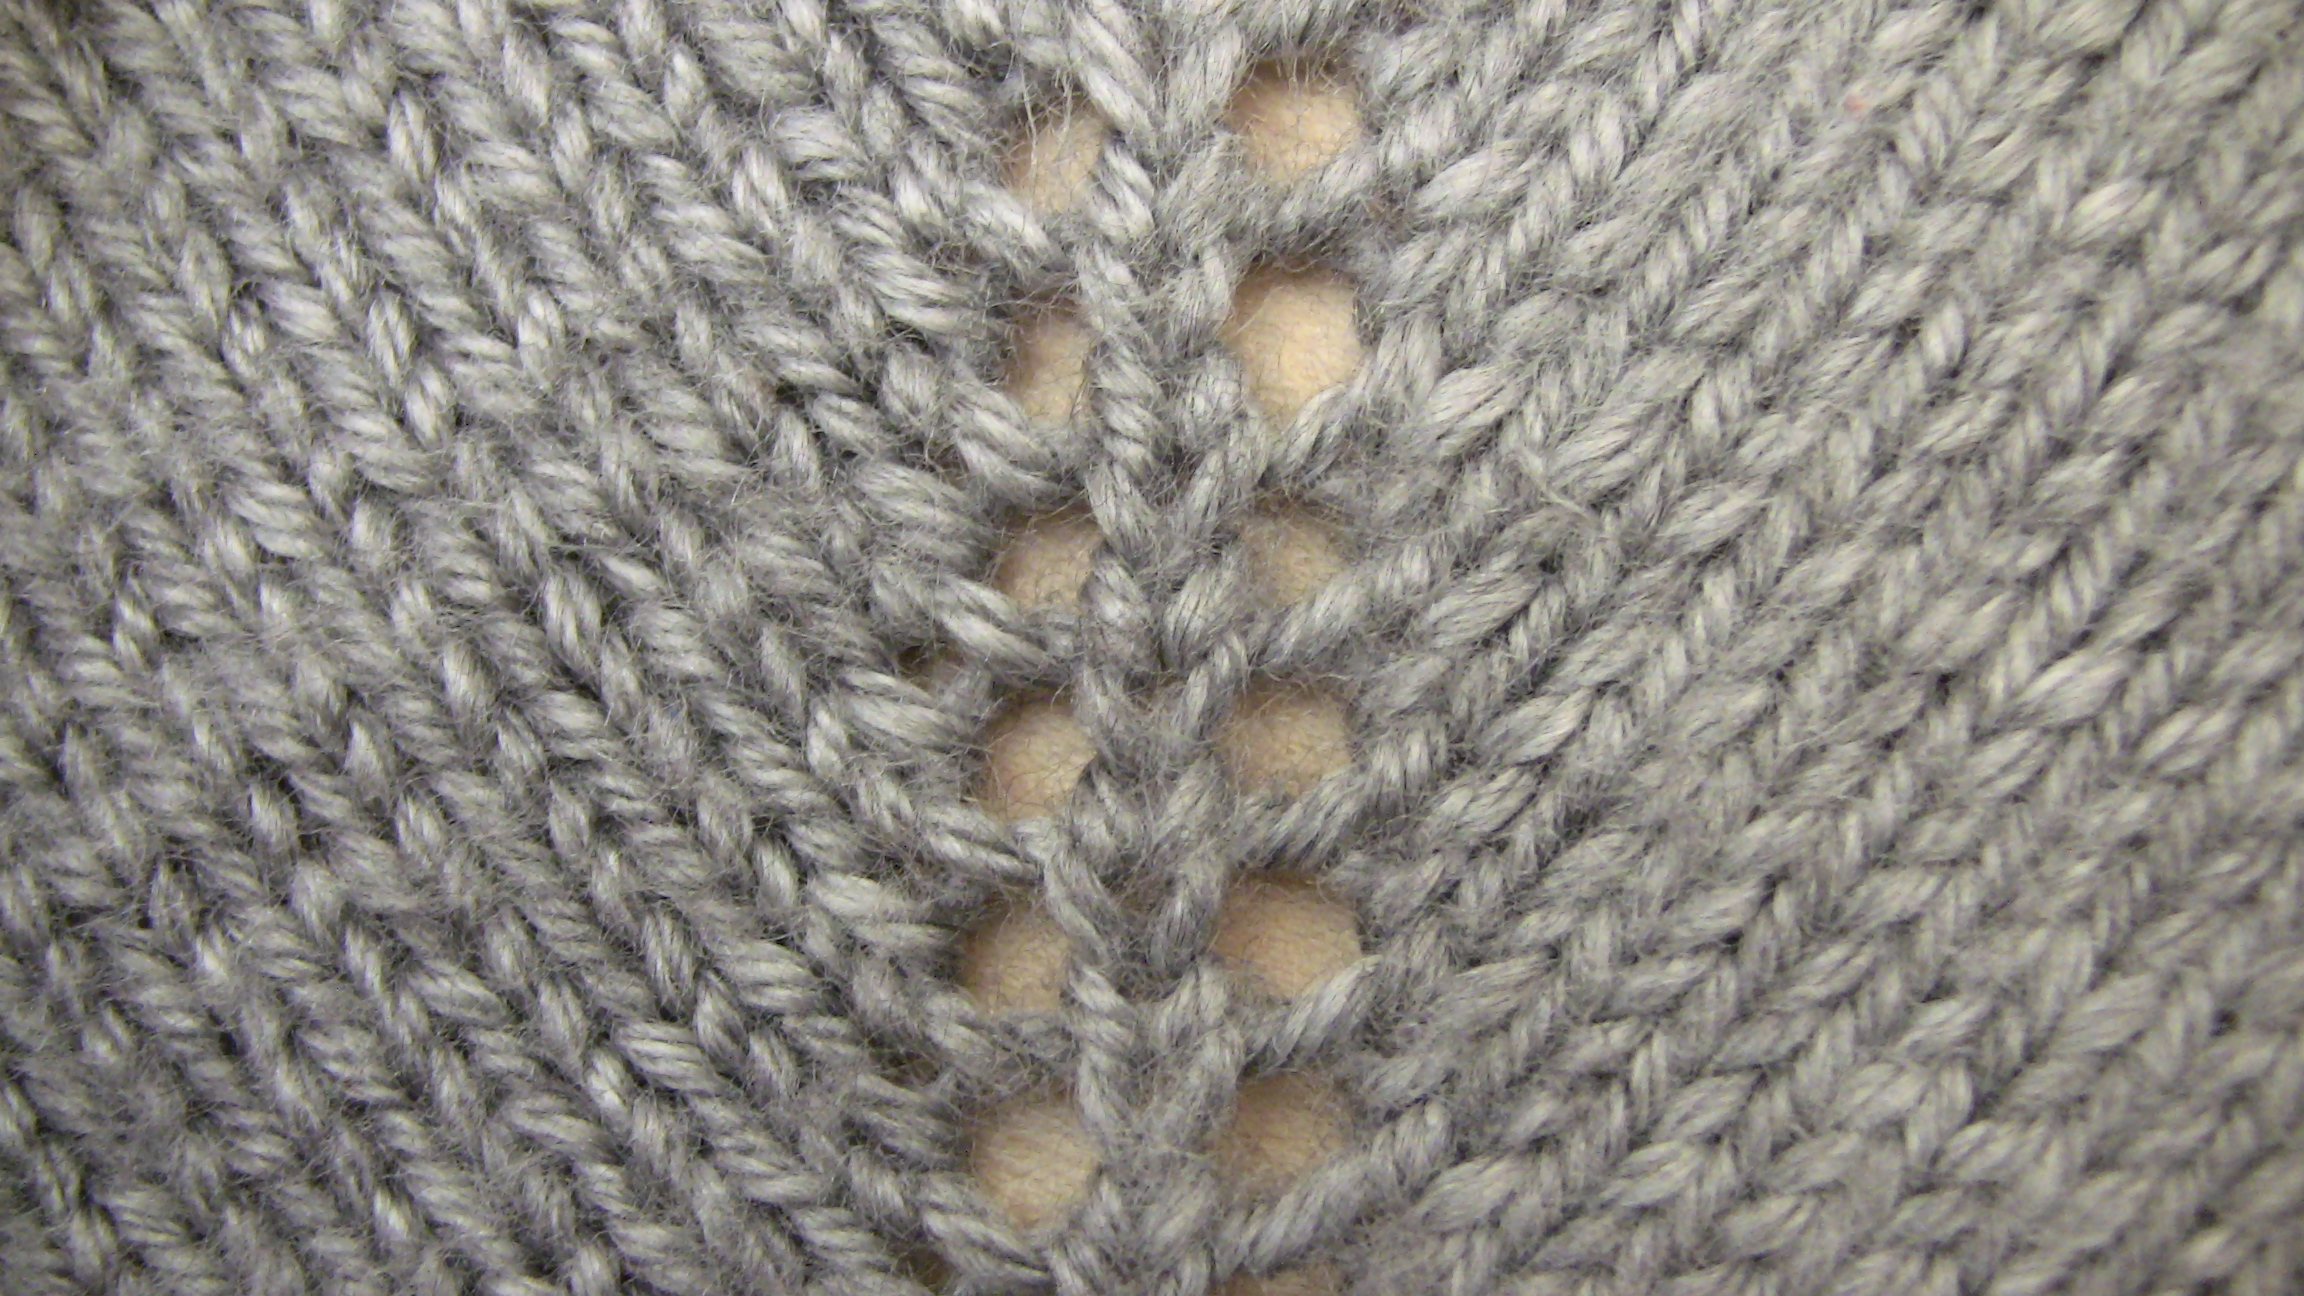 Knitting Stitches Double Yarn Over : Lesson 5 - Increasing type 2- Making a gap